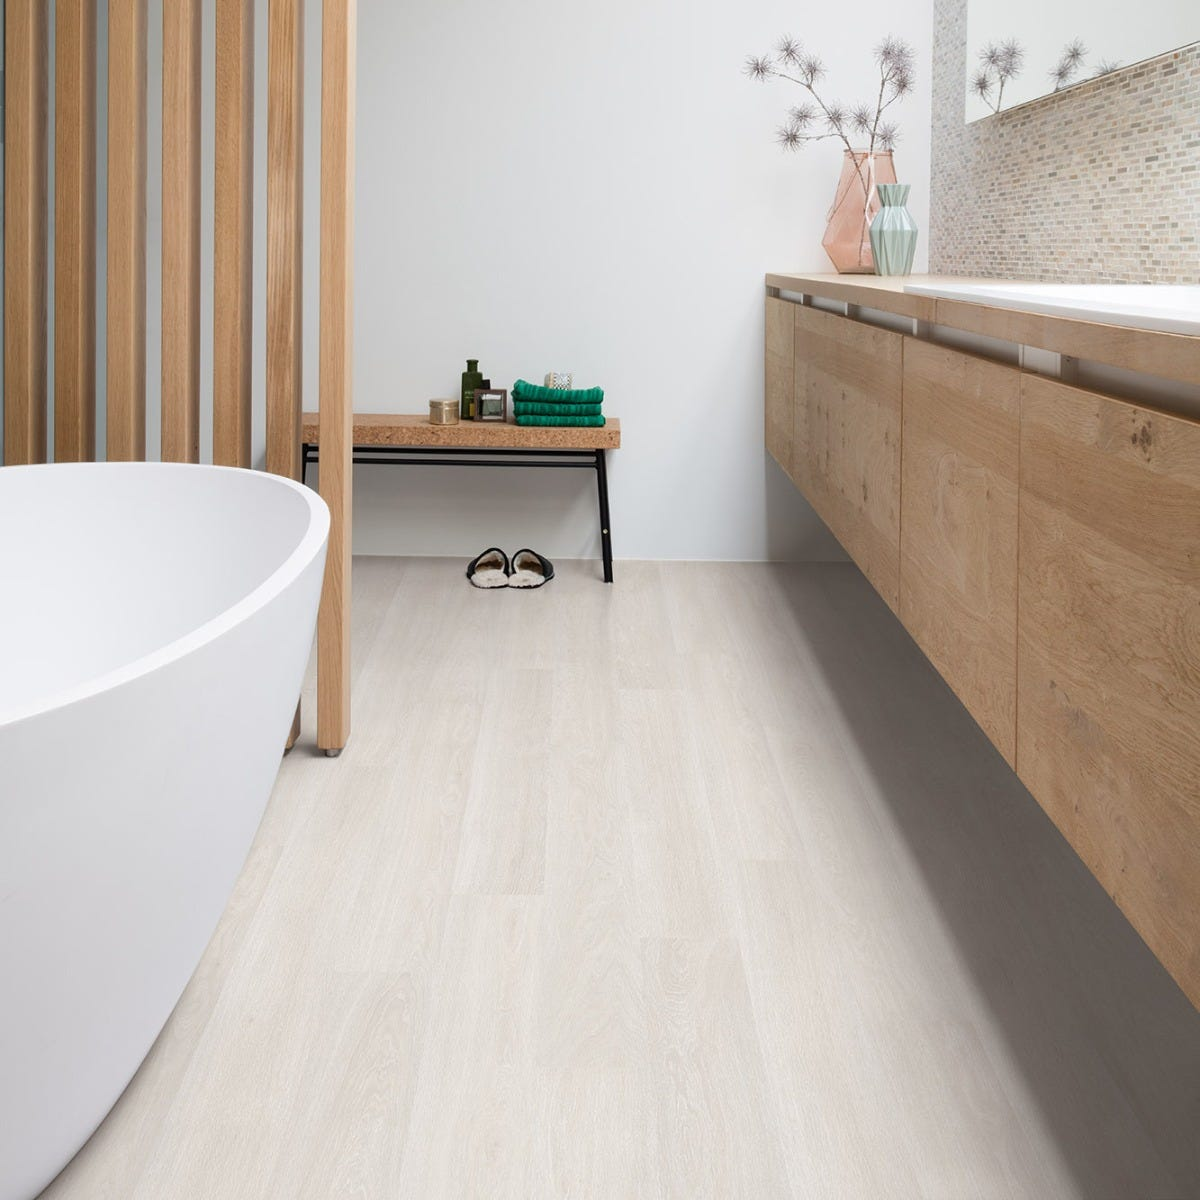 Bathroom Laminate Flooring